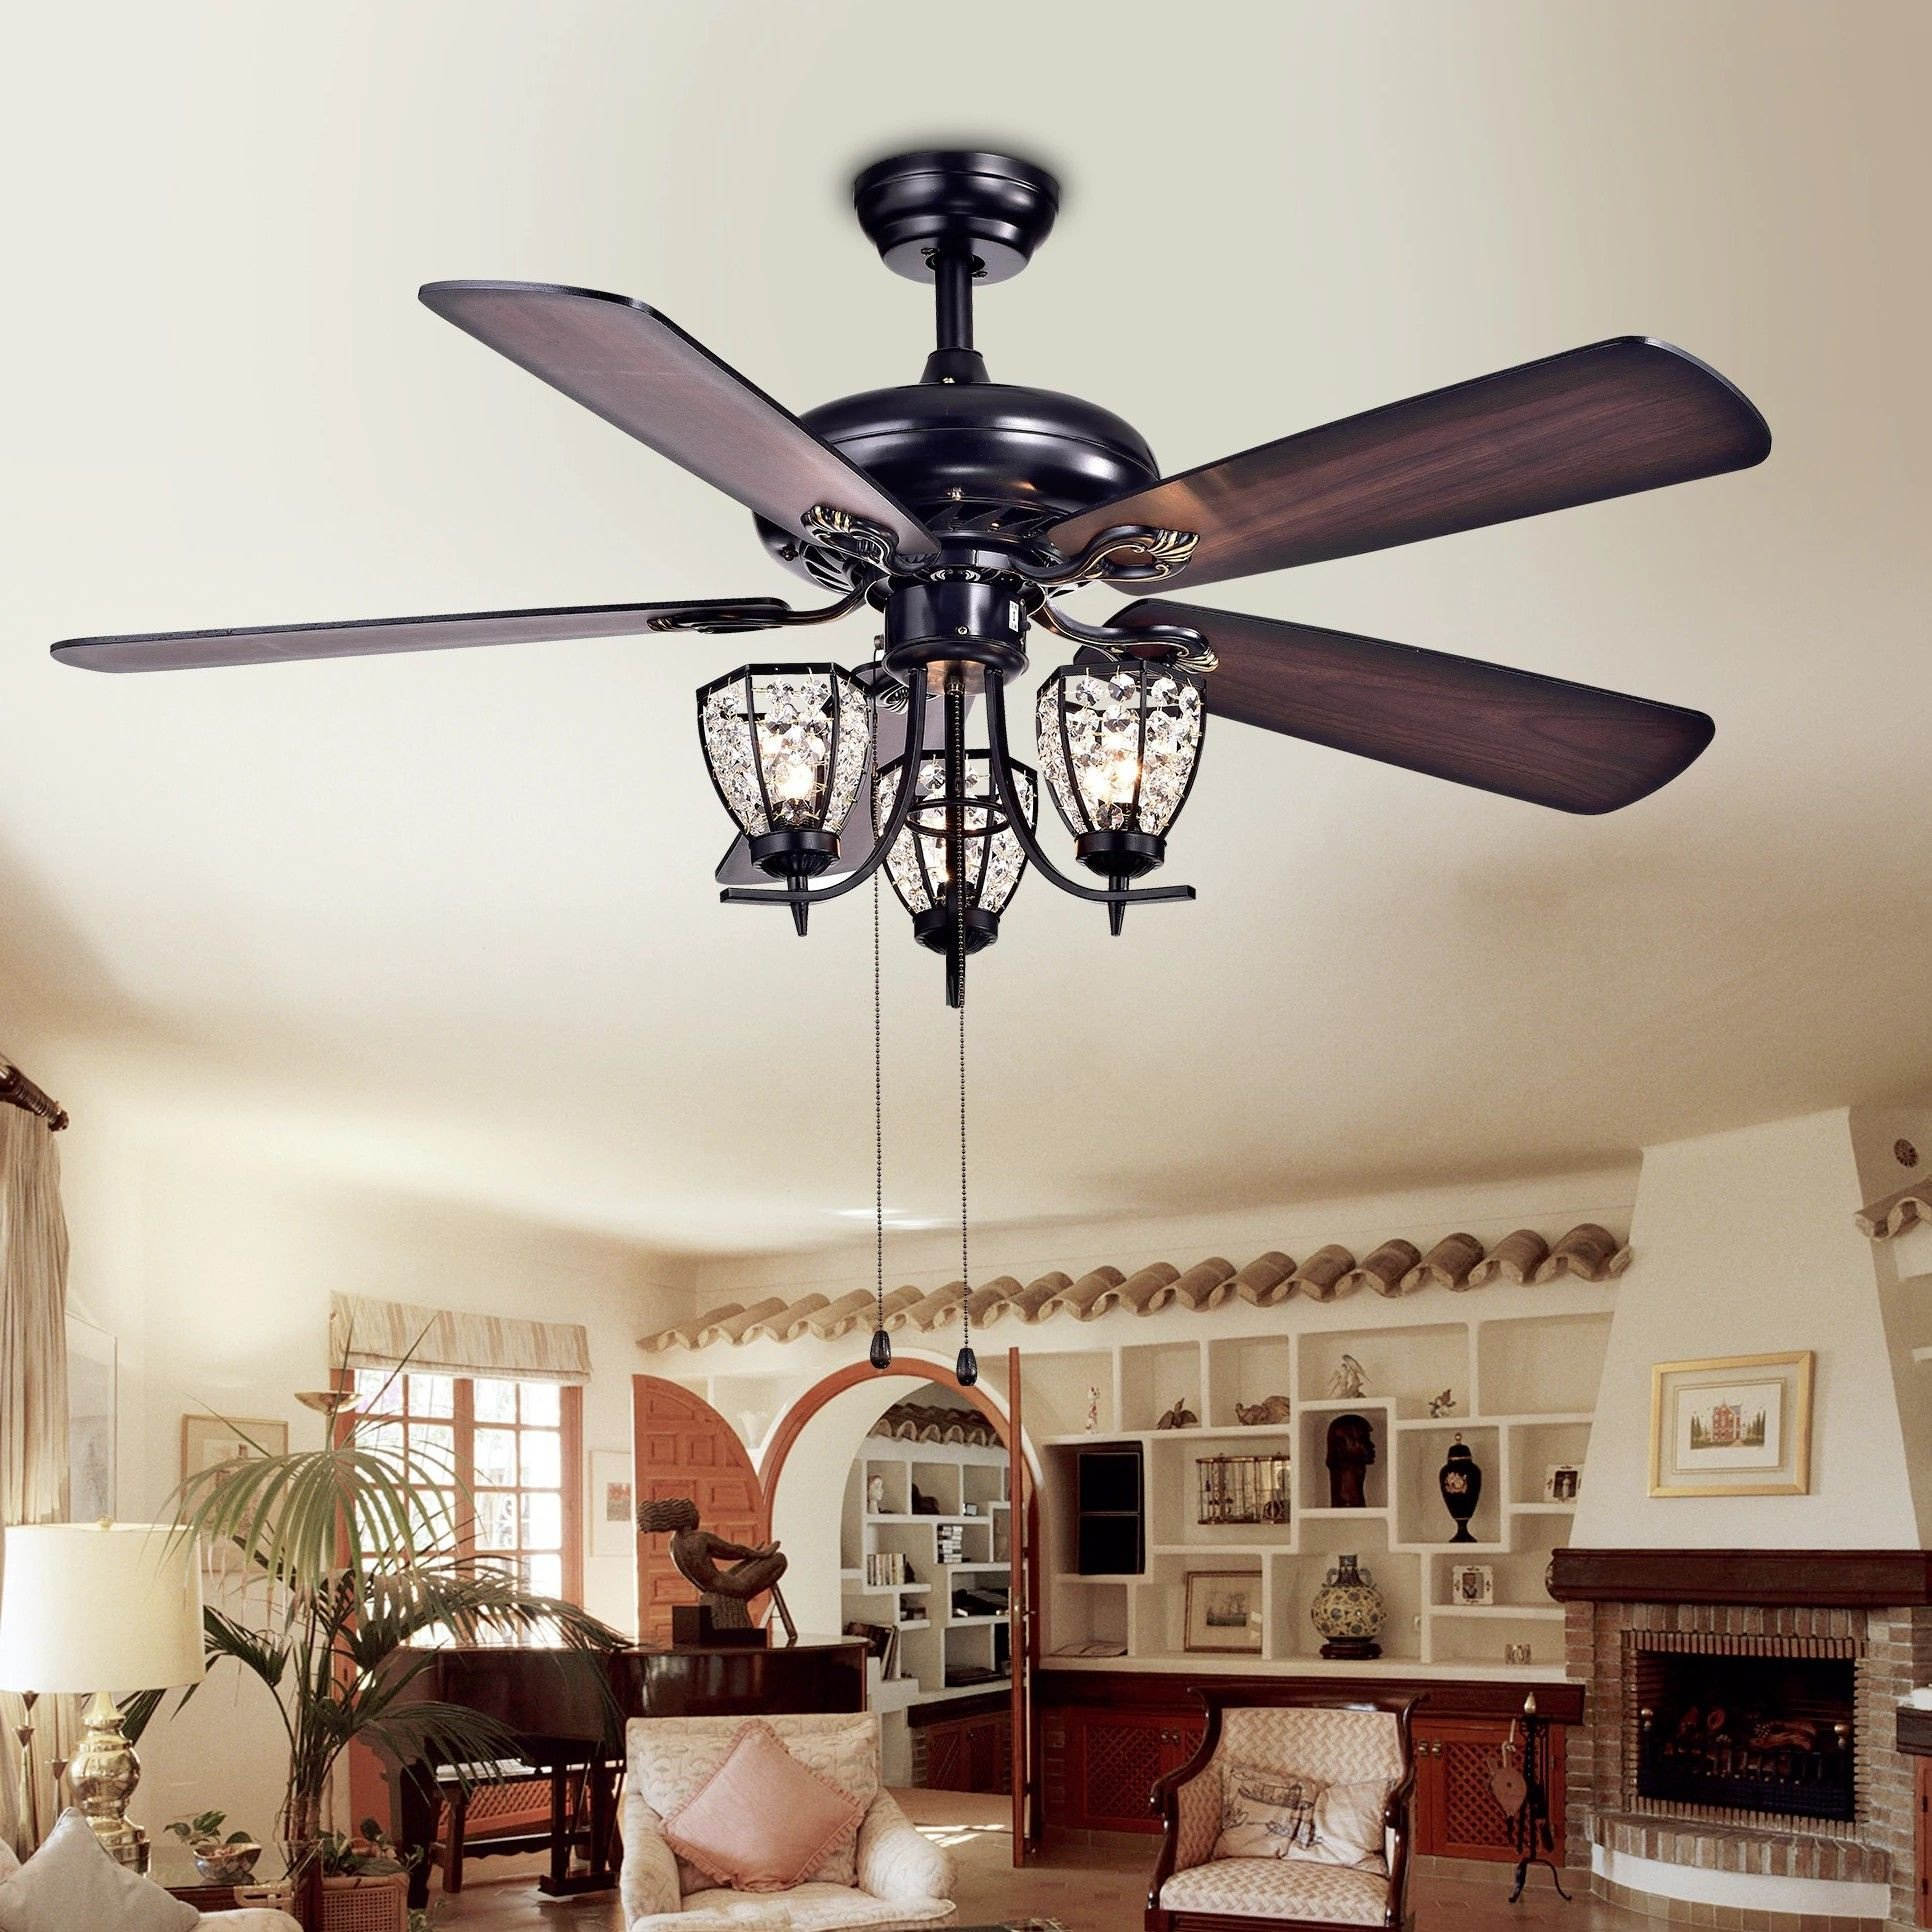 Ceiling Fan for Bedroom Fresh New Iron Ceiling Fan Graphics — Beautiful Furniture Home Ideas